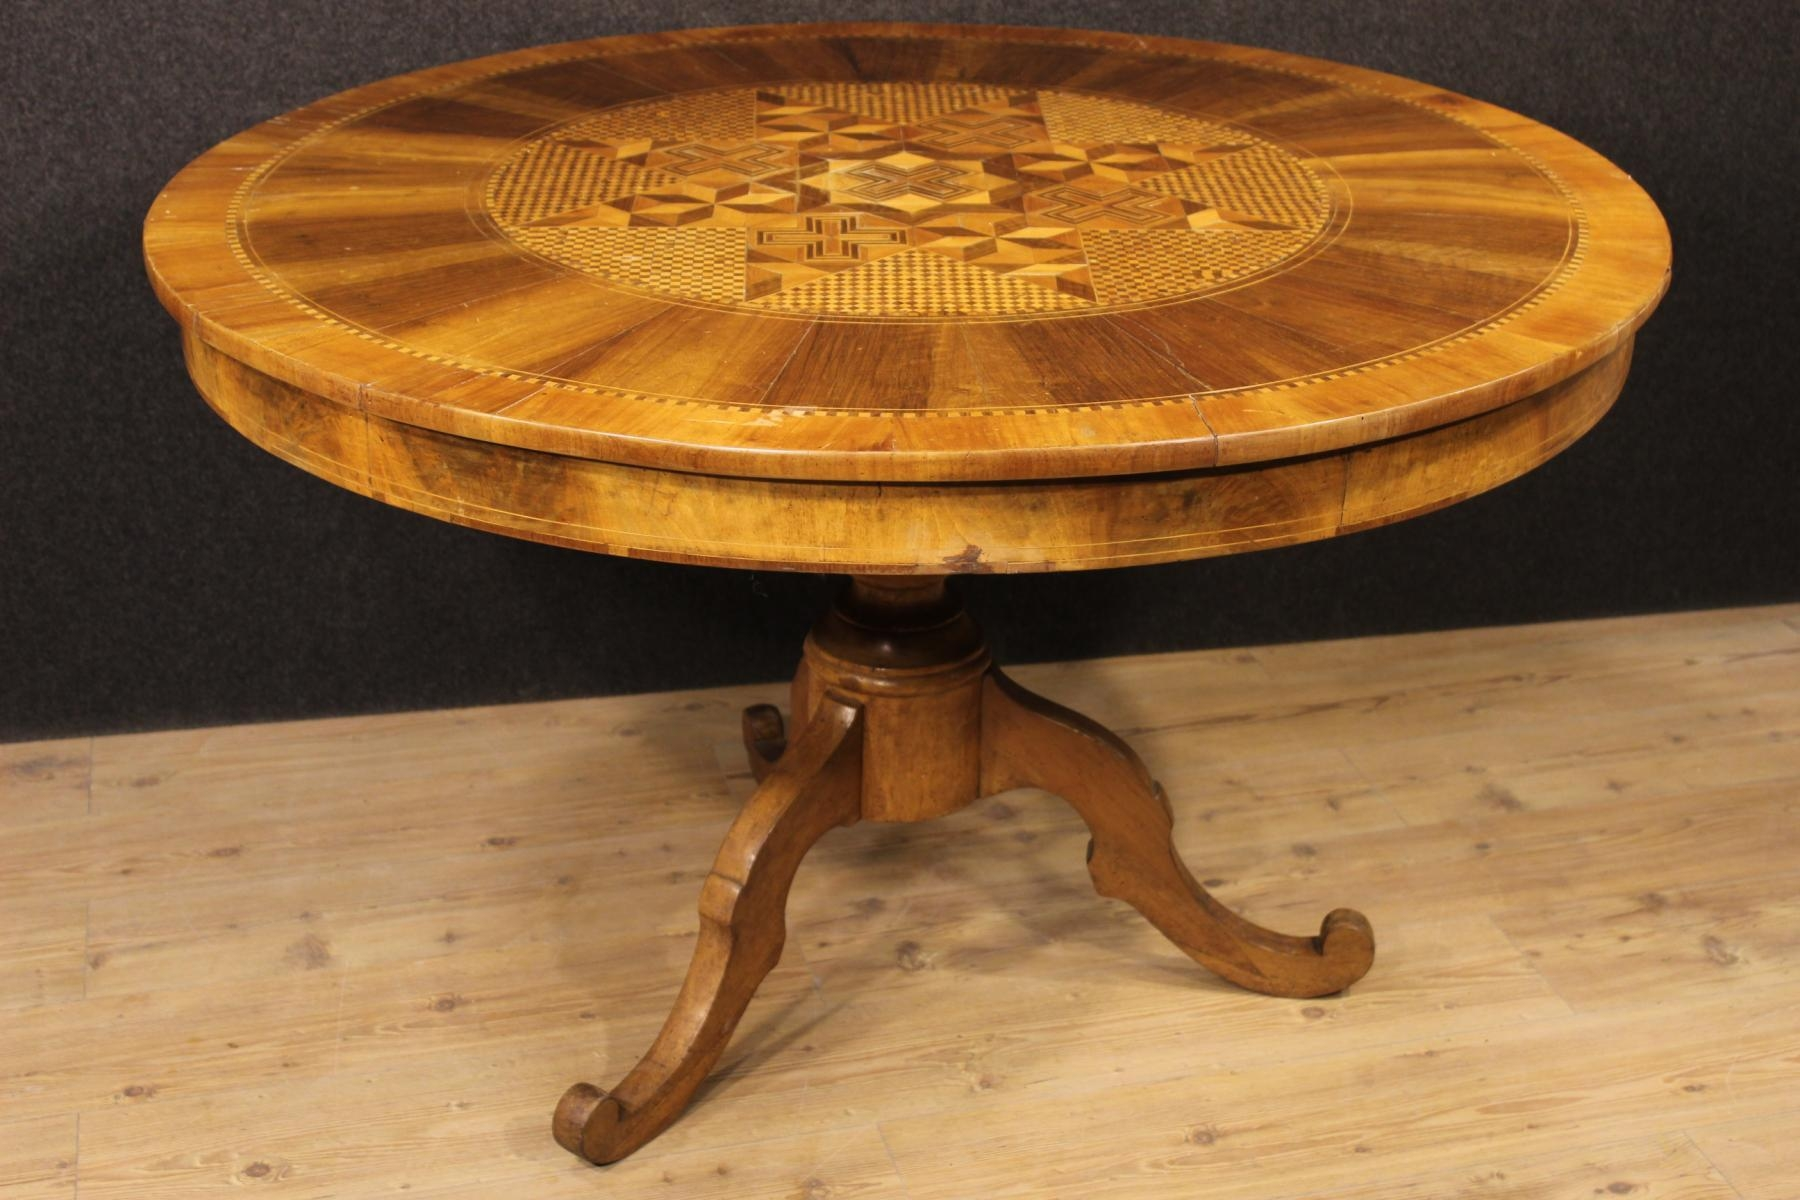 Antique Italian Carved Table With Inlaid Wood For Sale At Pamono With Regard To Italian Inlaid Wood Wall Art (Image 6 of 20)